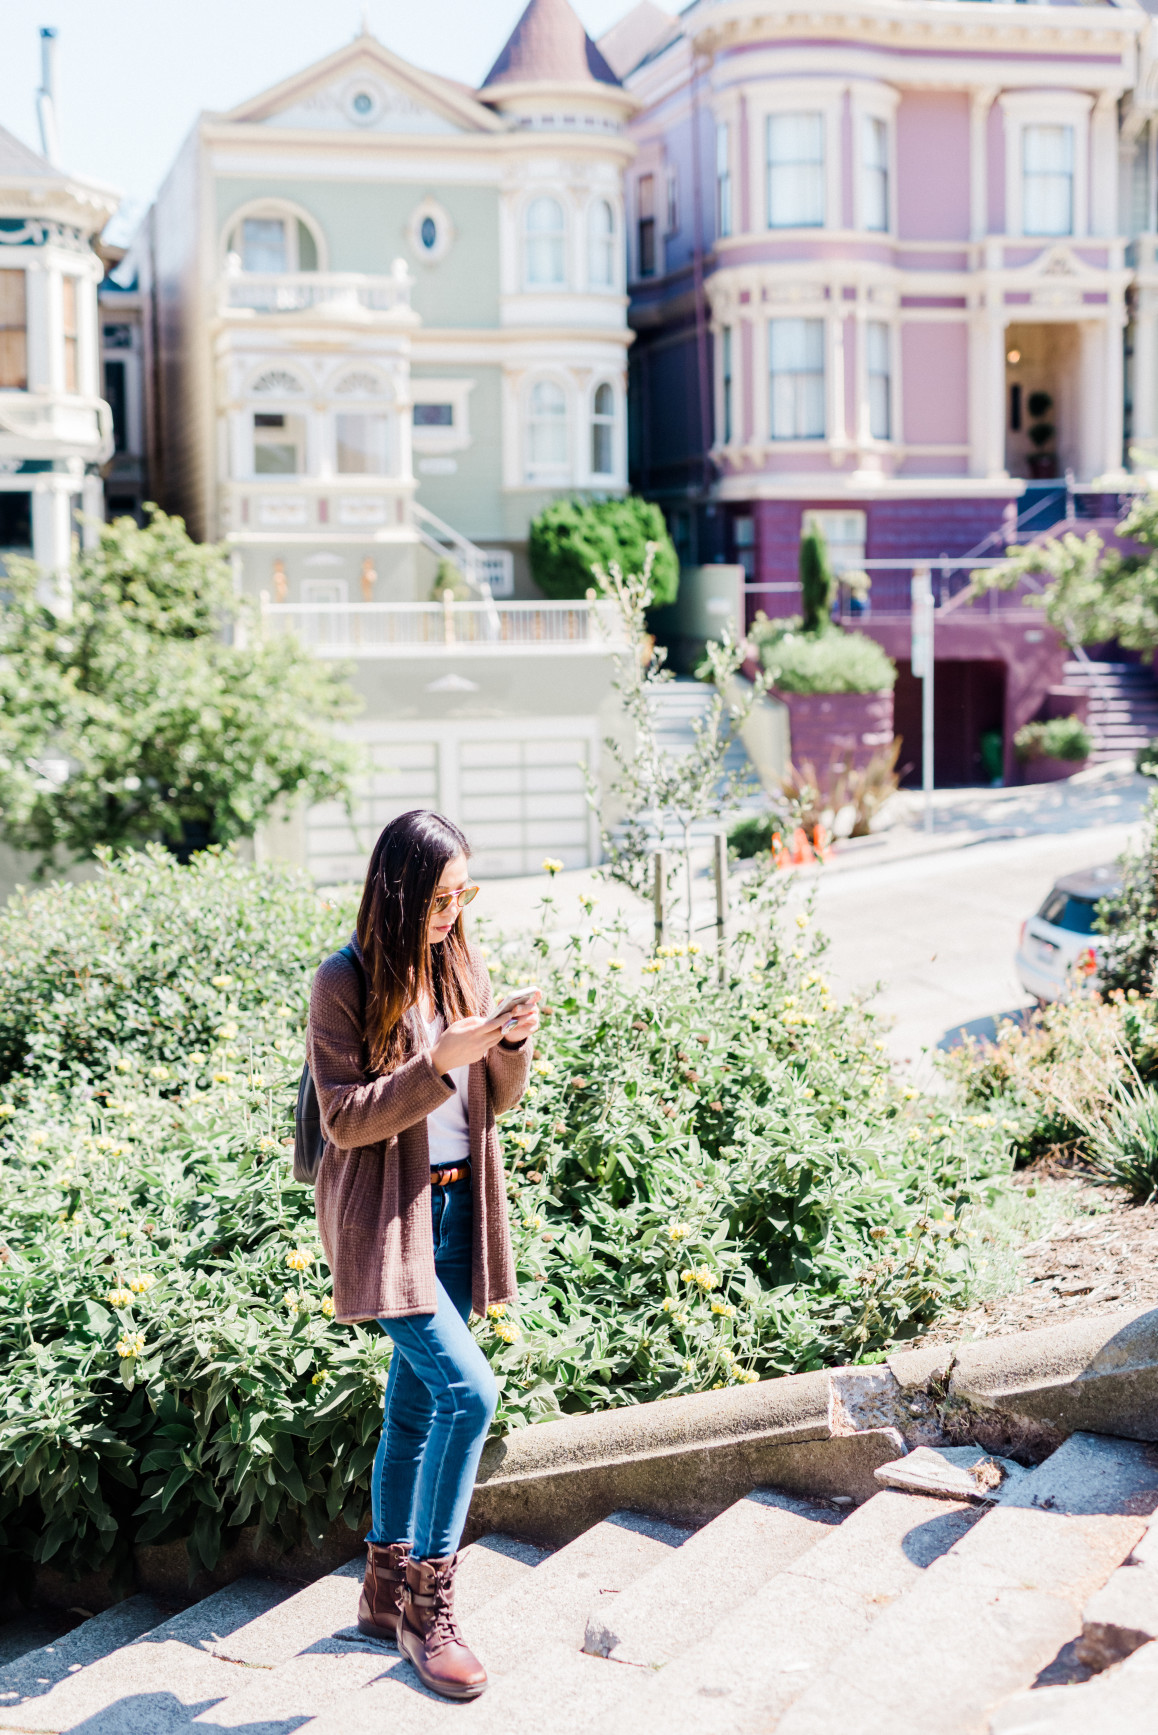 Photo of a person on their phone in front of private homes in SF